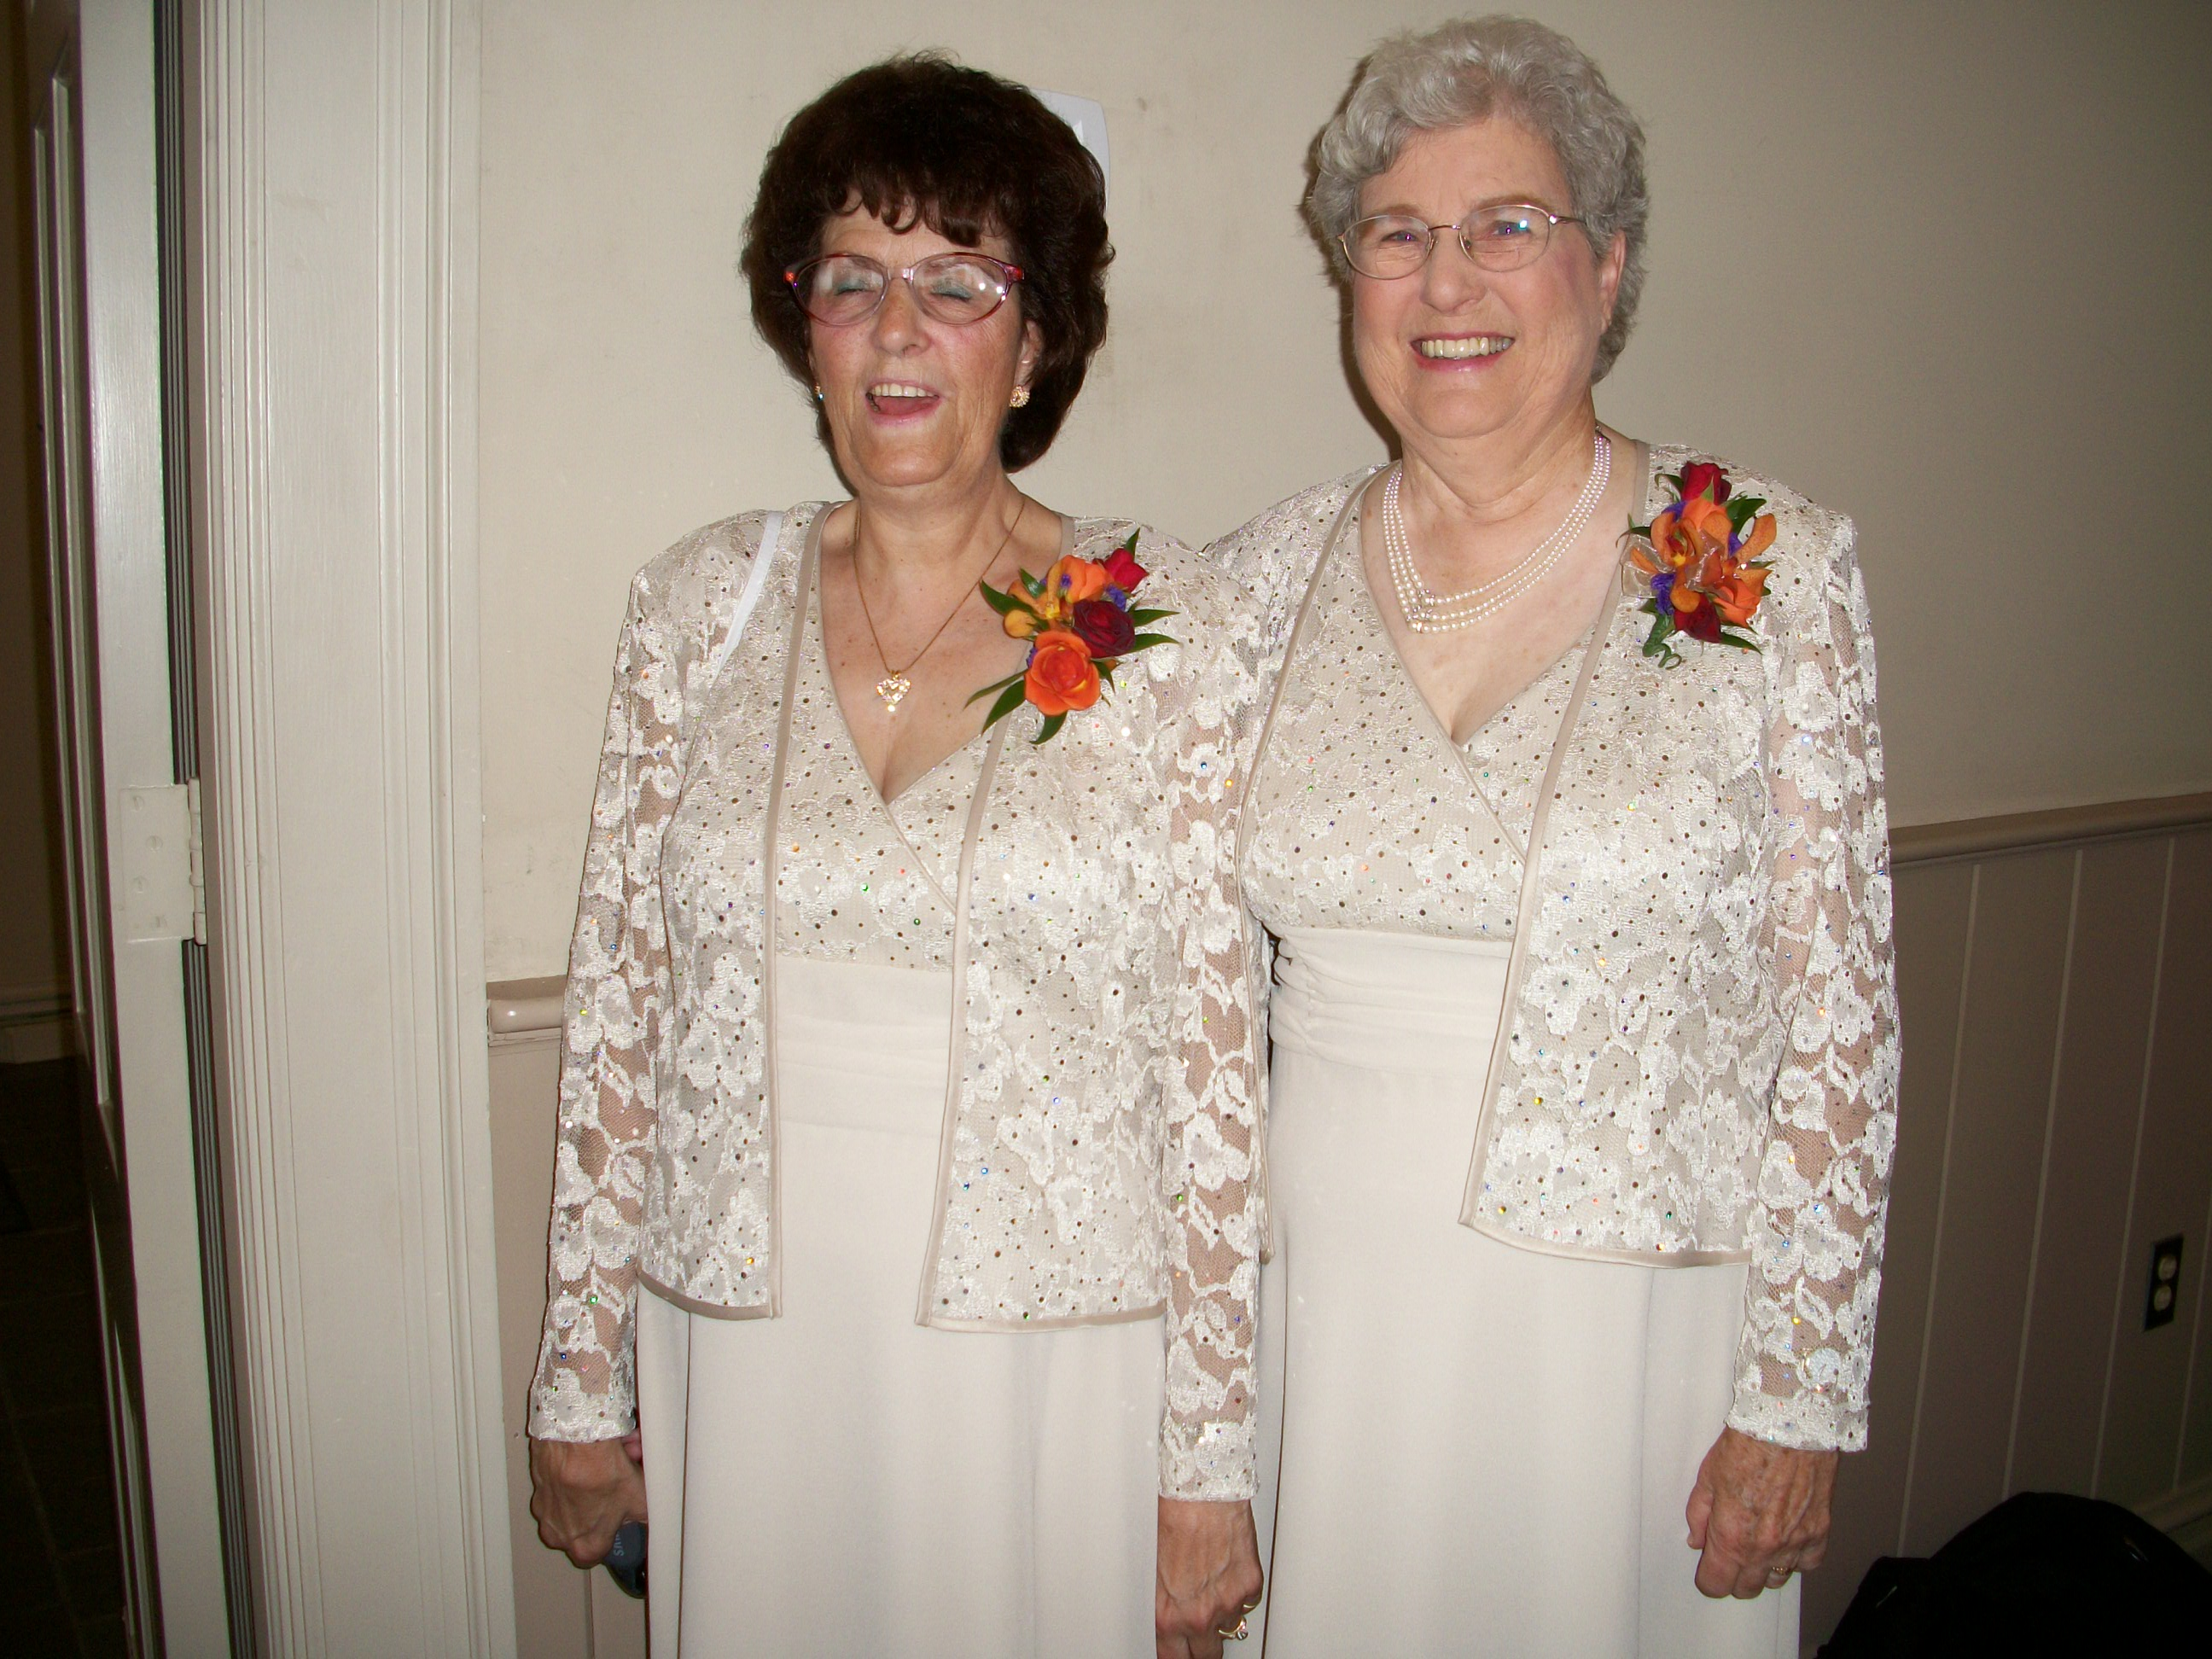 Wedding Dresses For Grandma : So what if the grandmothers picked same dress they both look